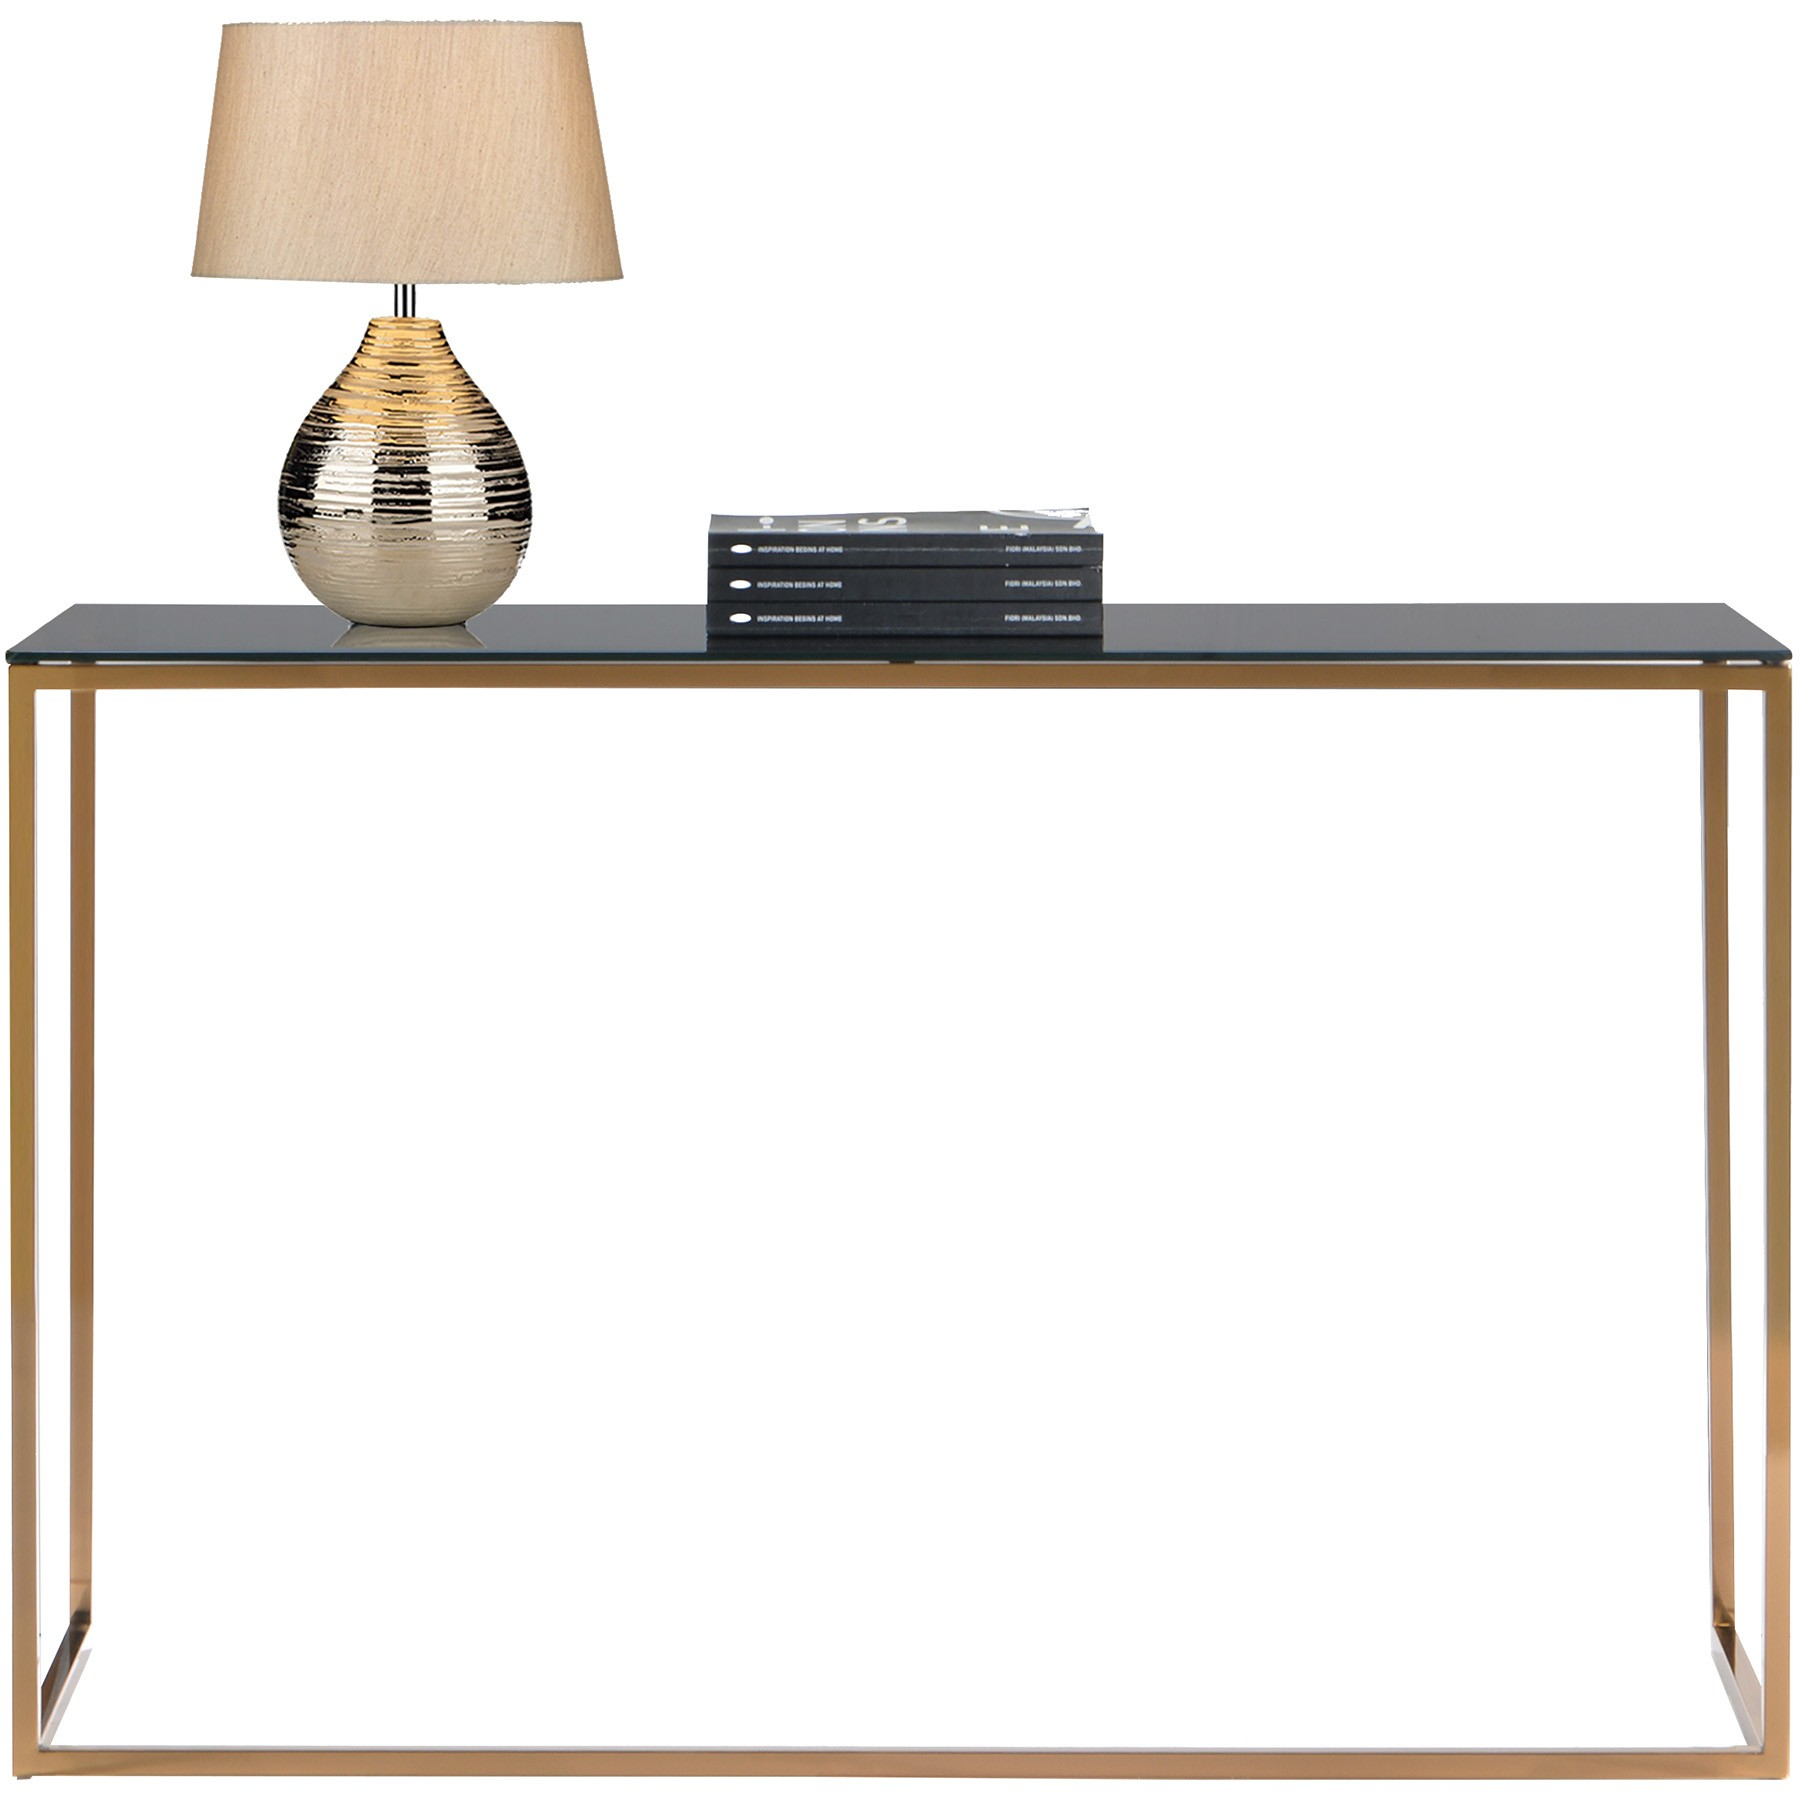 Kyra (126Cm Gold) Console Table With Tempered Glass Top Regarding Kyra Console Tables (Photo 10 of 30)